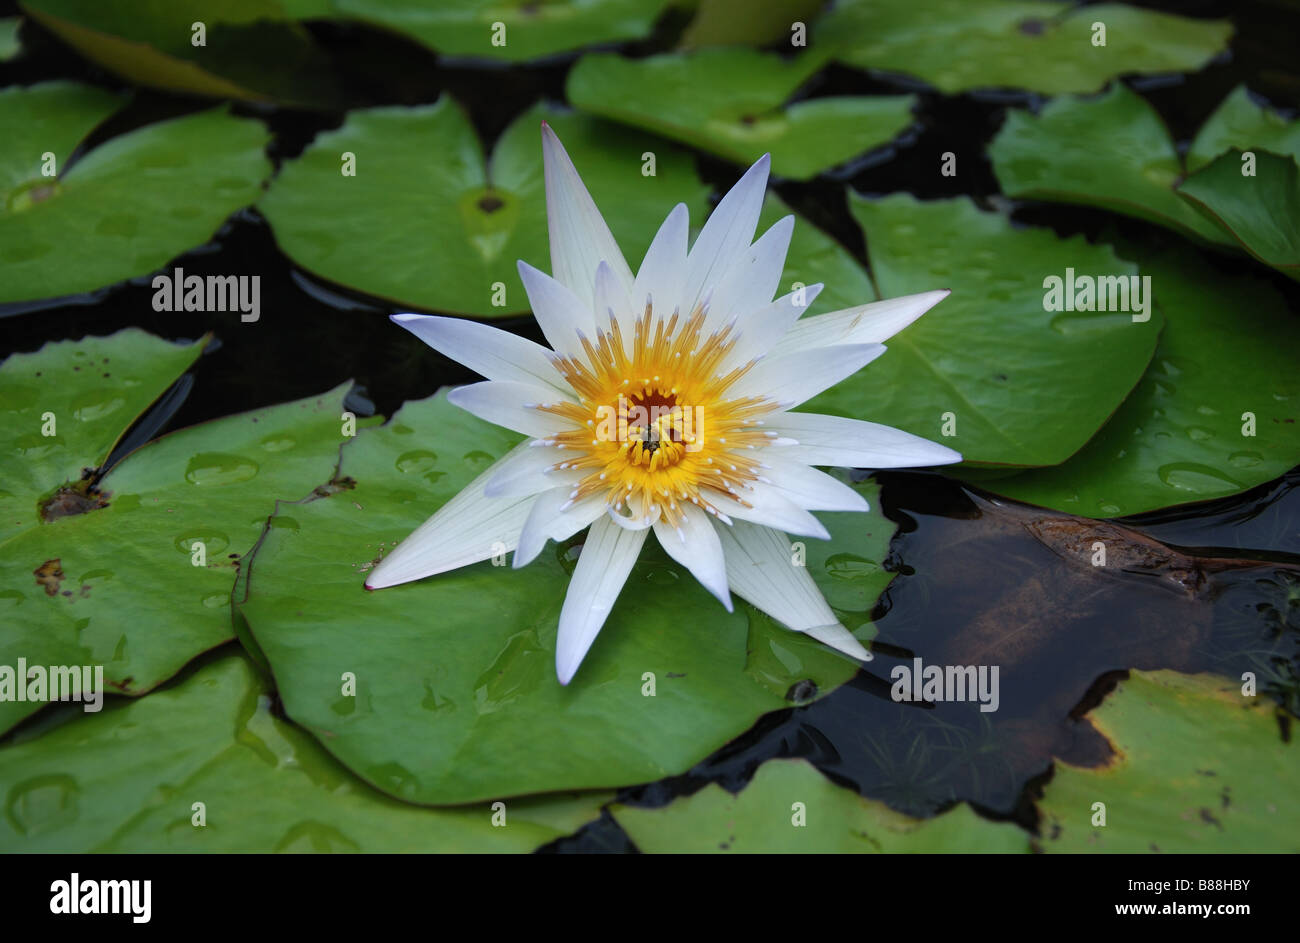 Water Lily Flower - Stock Image